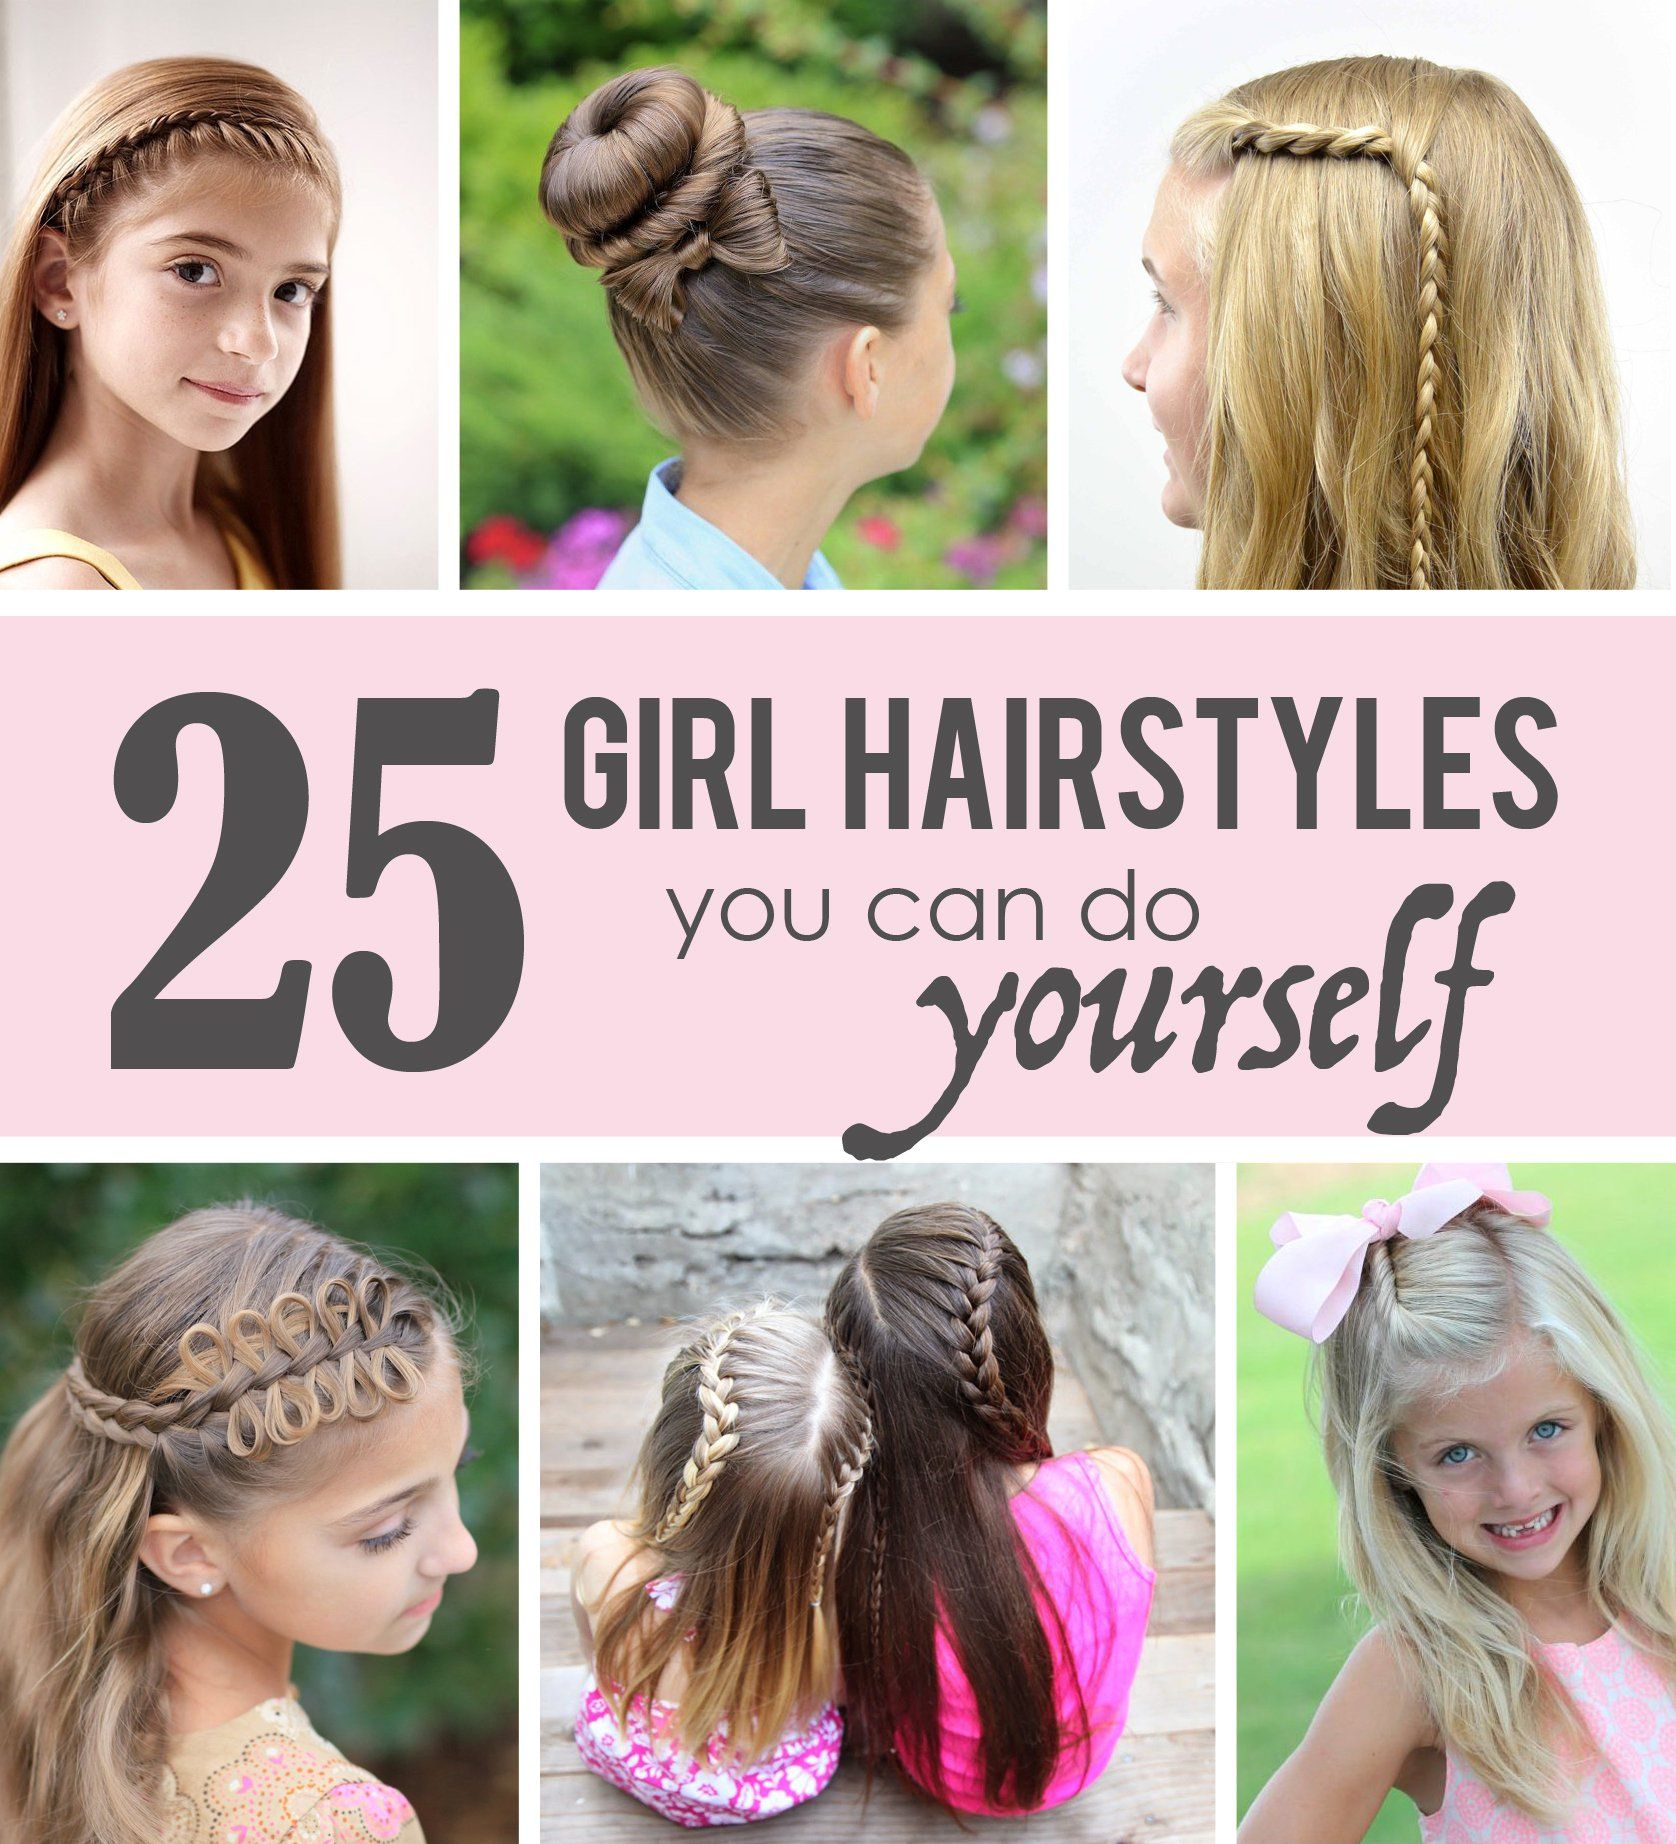 25 little girl hairstylesyou can do yourself girl hairstyles 25 little girl hairstylesyou can do yourself solutioingenieria Image collections